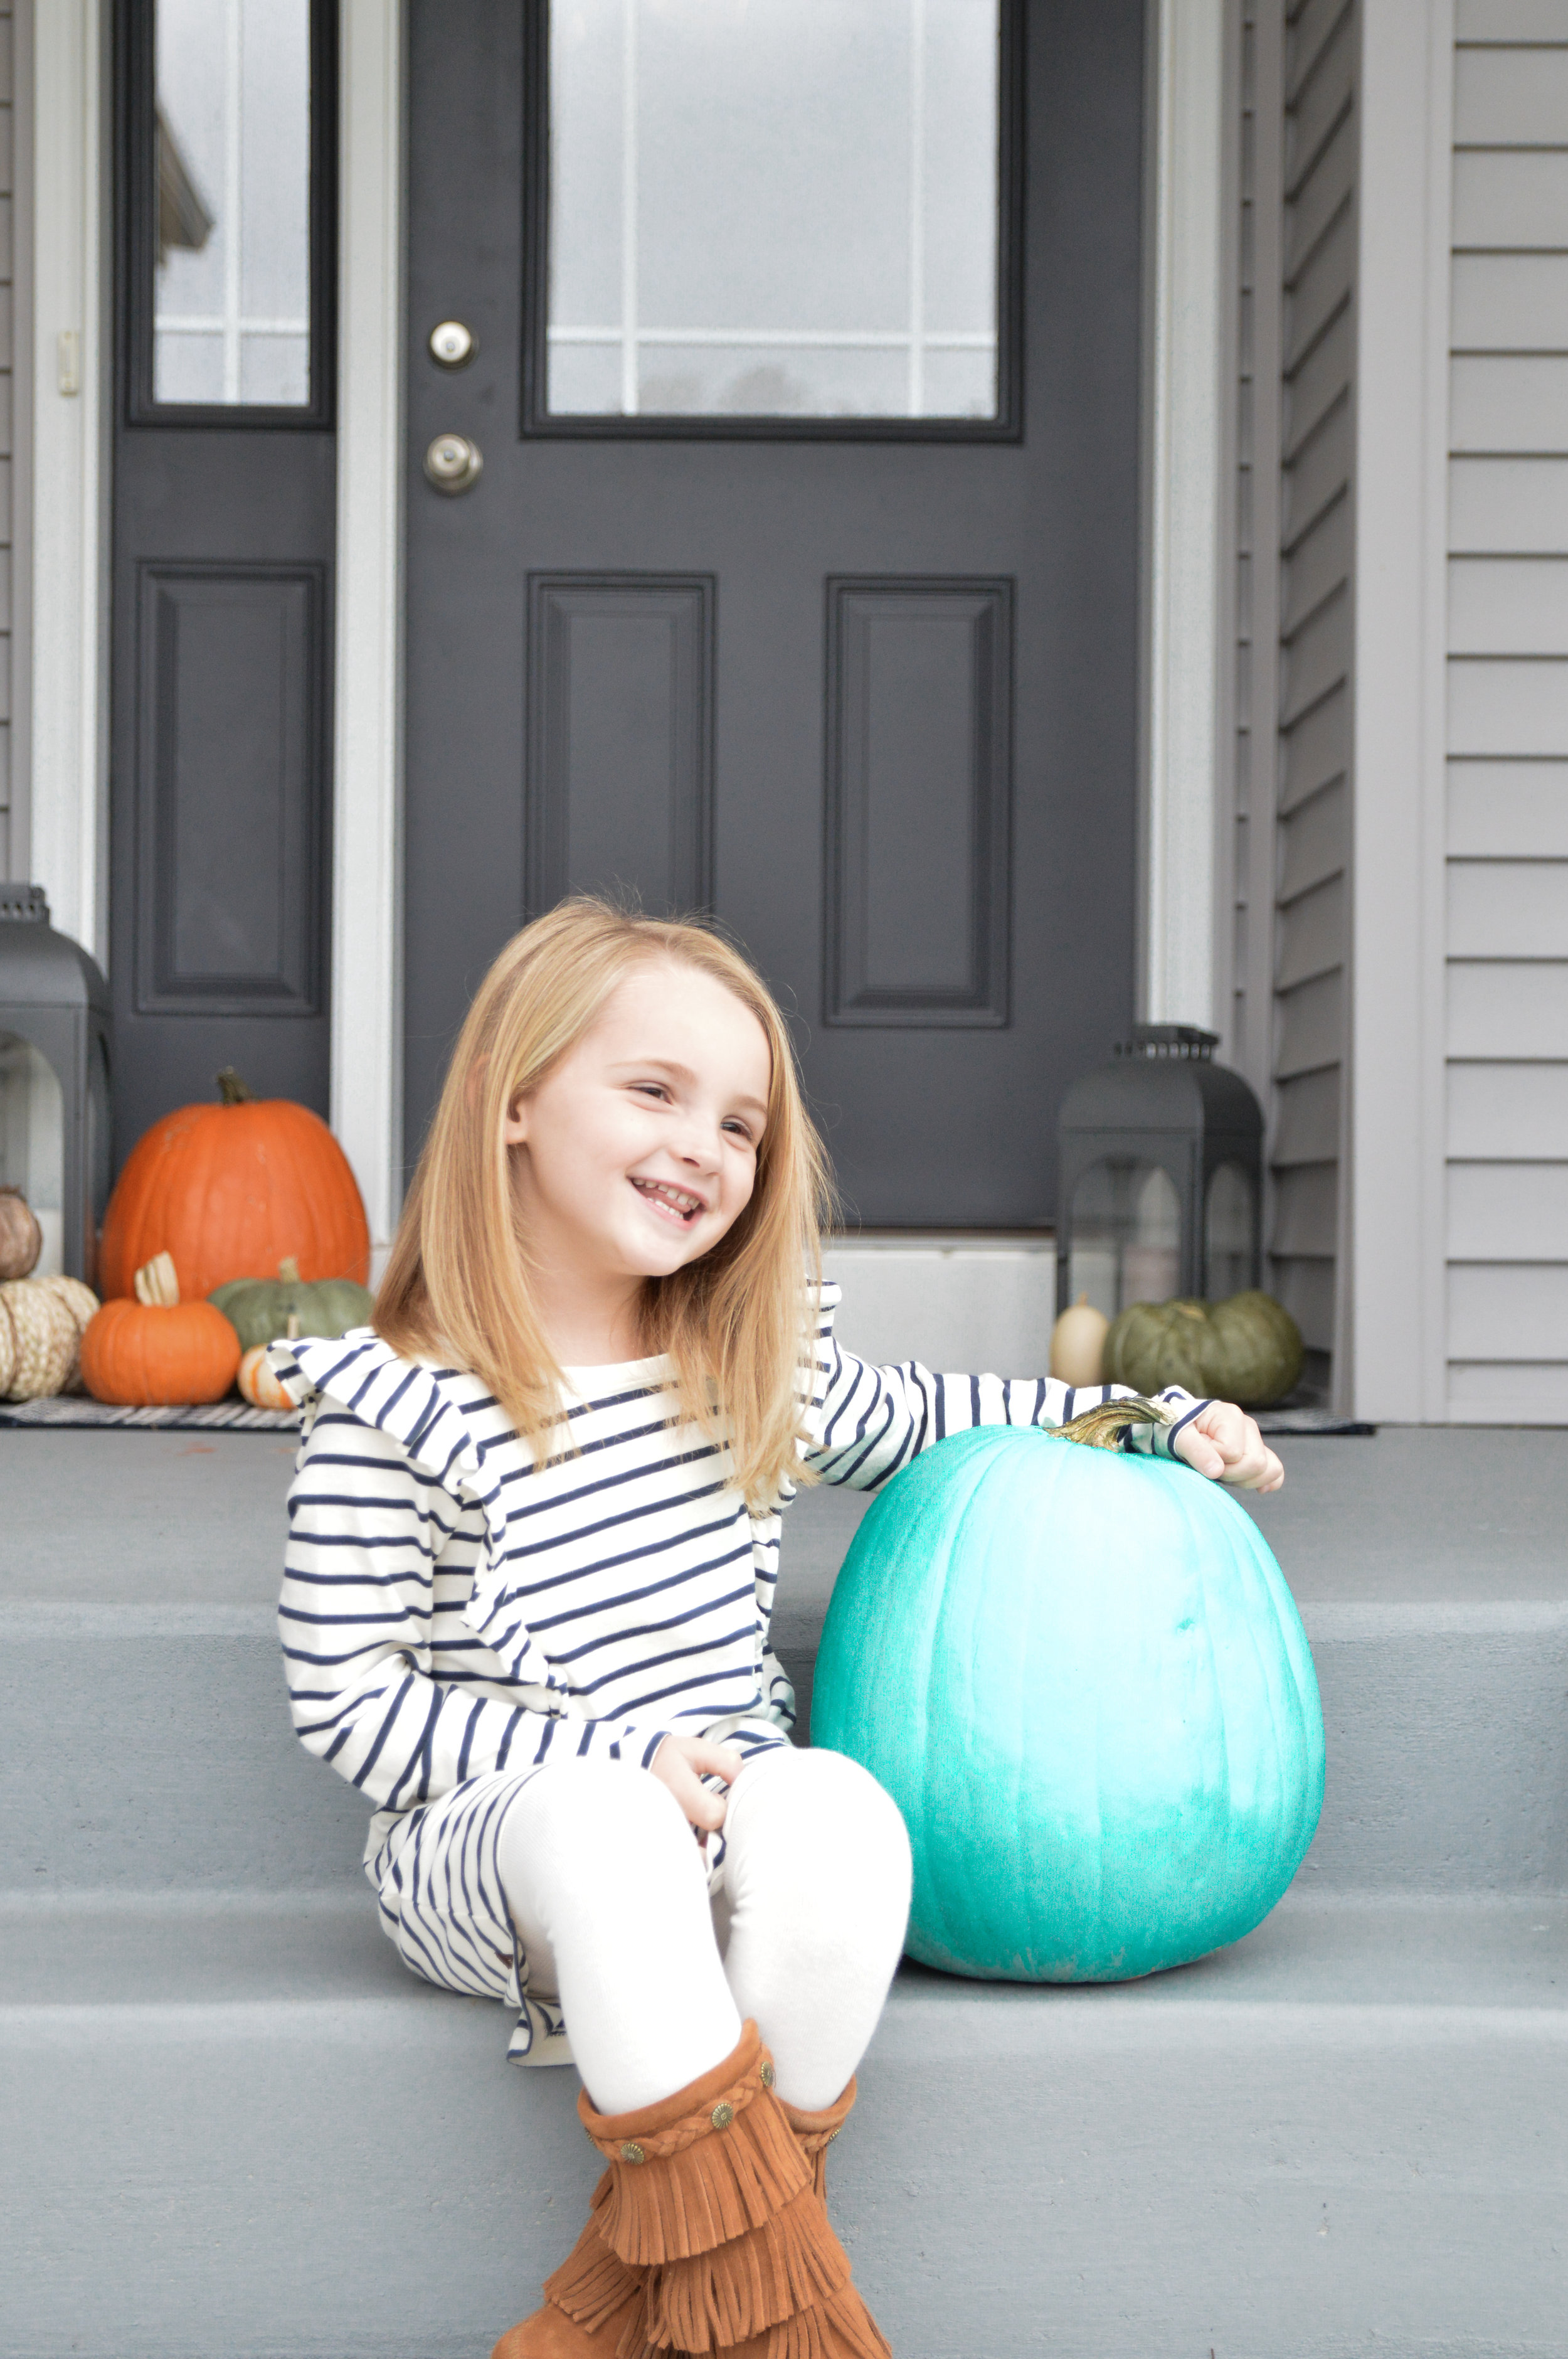 Just a girl and her Teal Pumpkin.